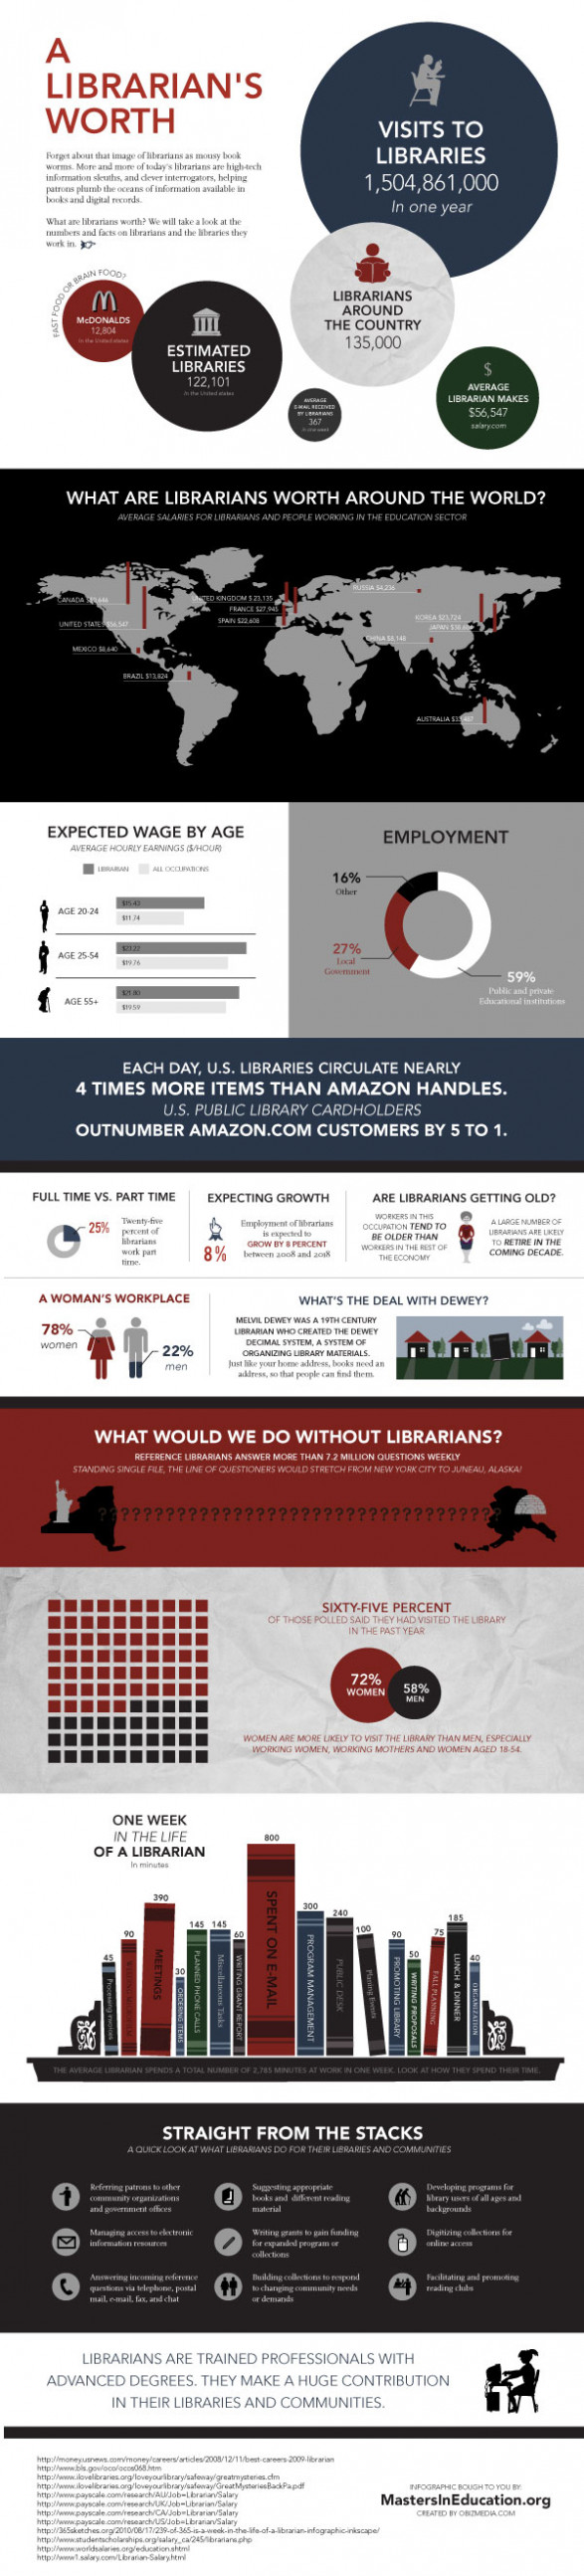 A Librarian�s Worth Around the World